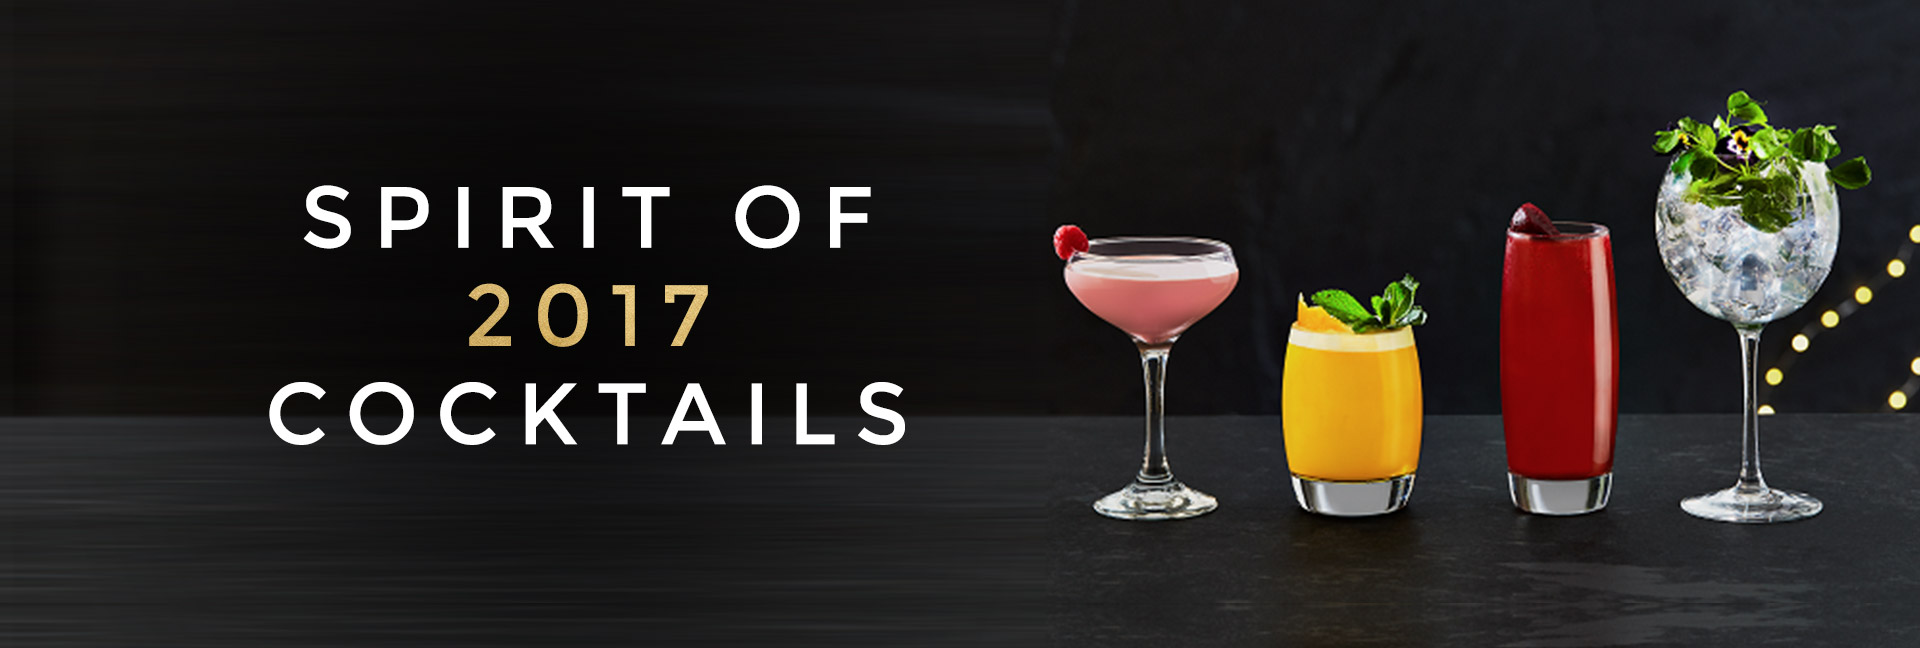 Spirit of 2017 cocktails at All Bar One Chester